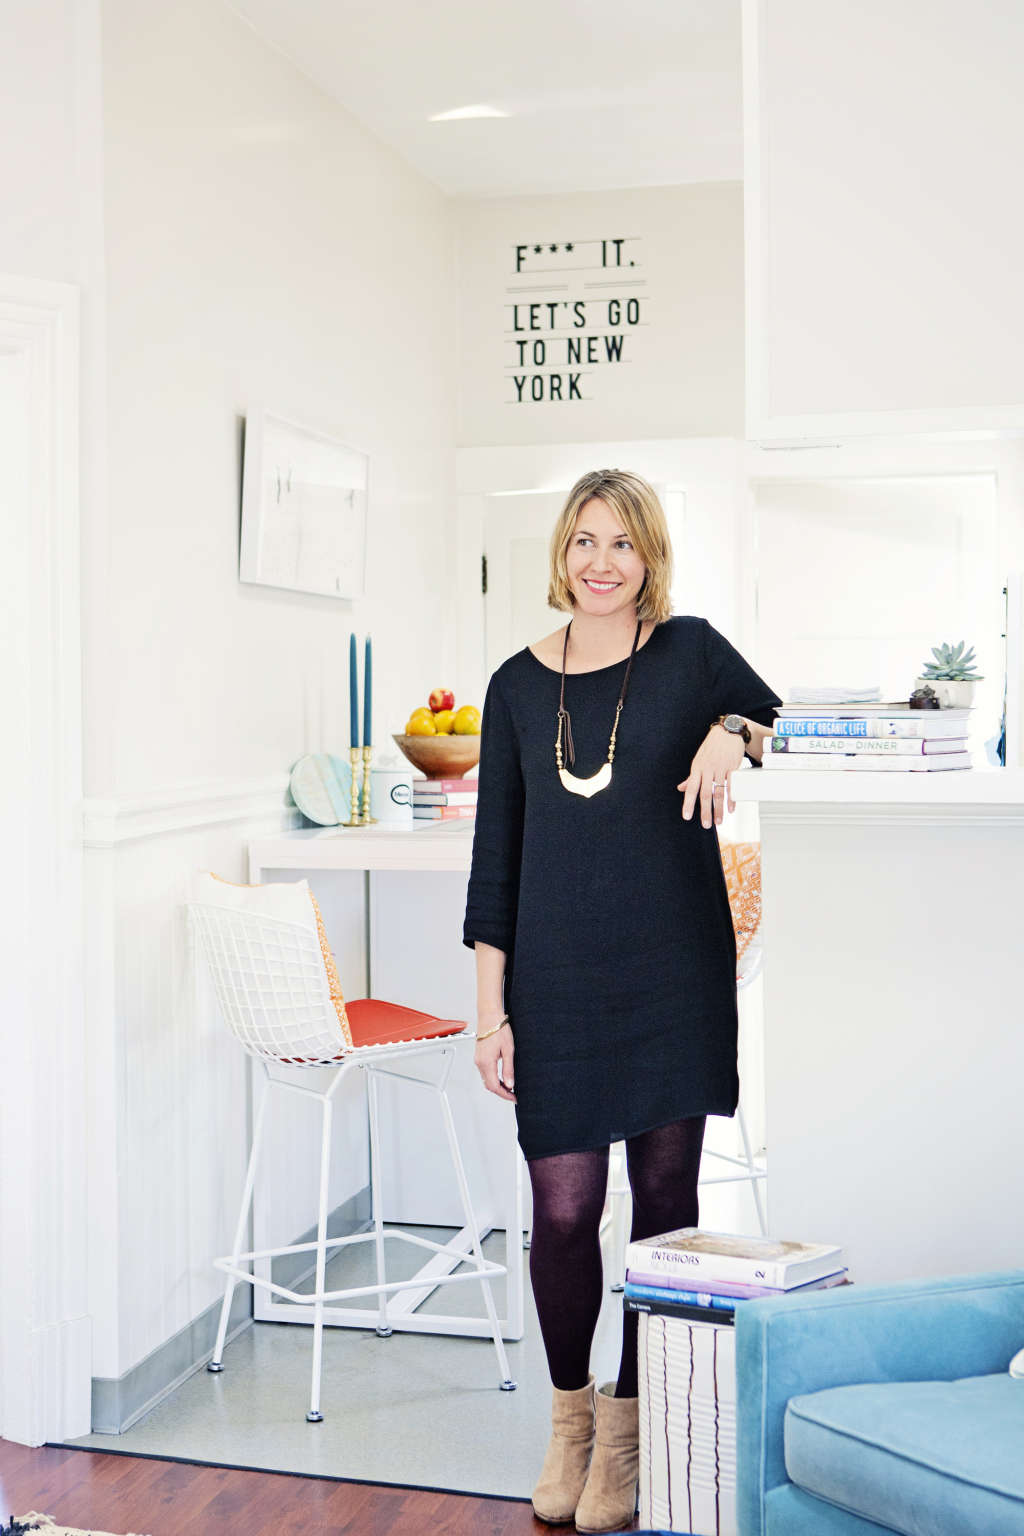 House Tour: A Bright, 700 Square Foot Rental Apartment